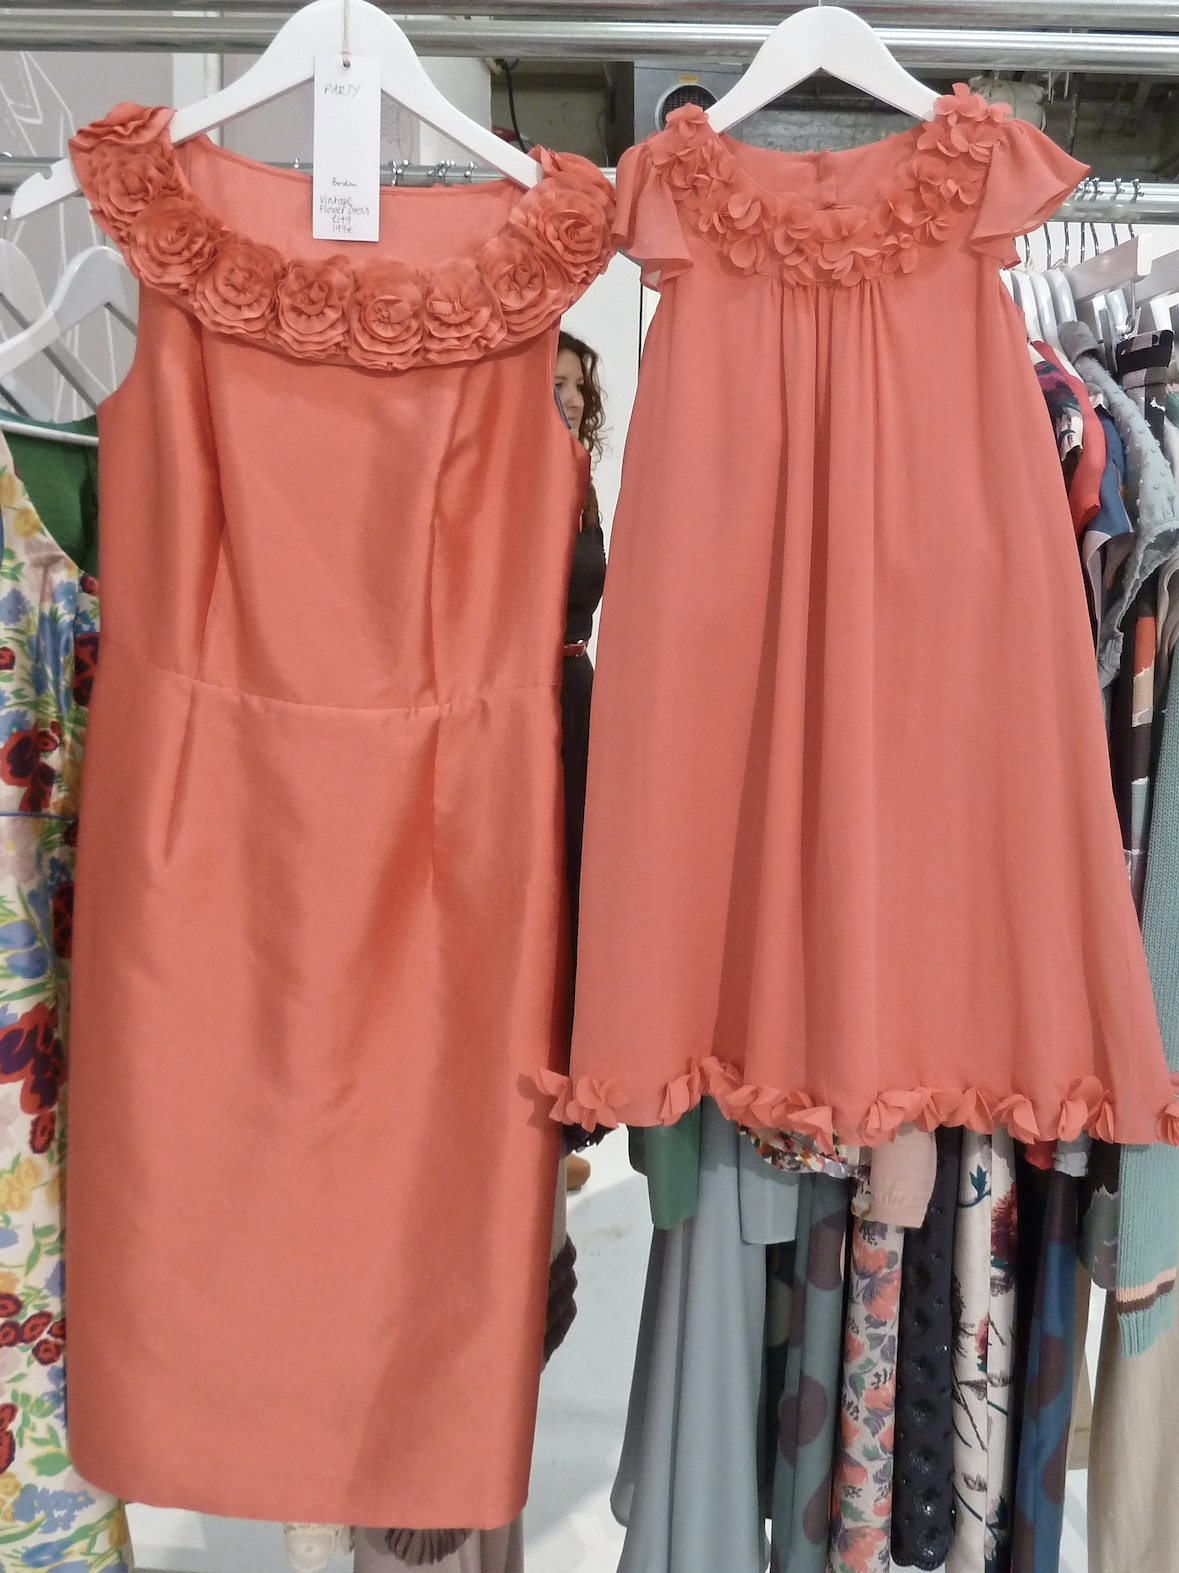 Co-ordinating dresses from the special occasion collection at Boden for adult and children